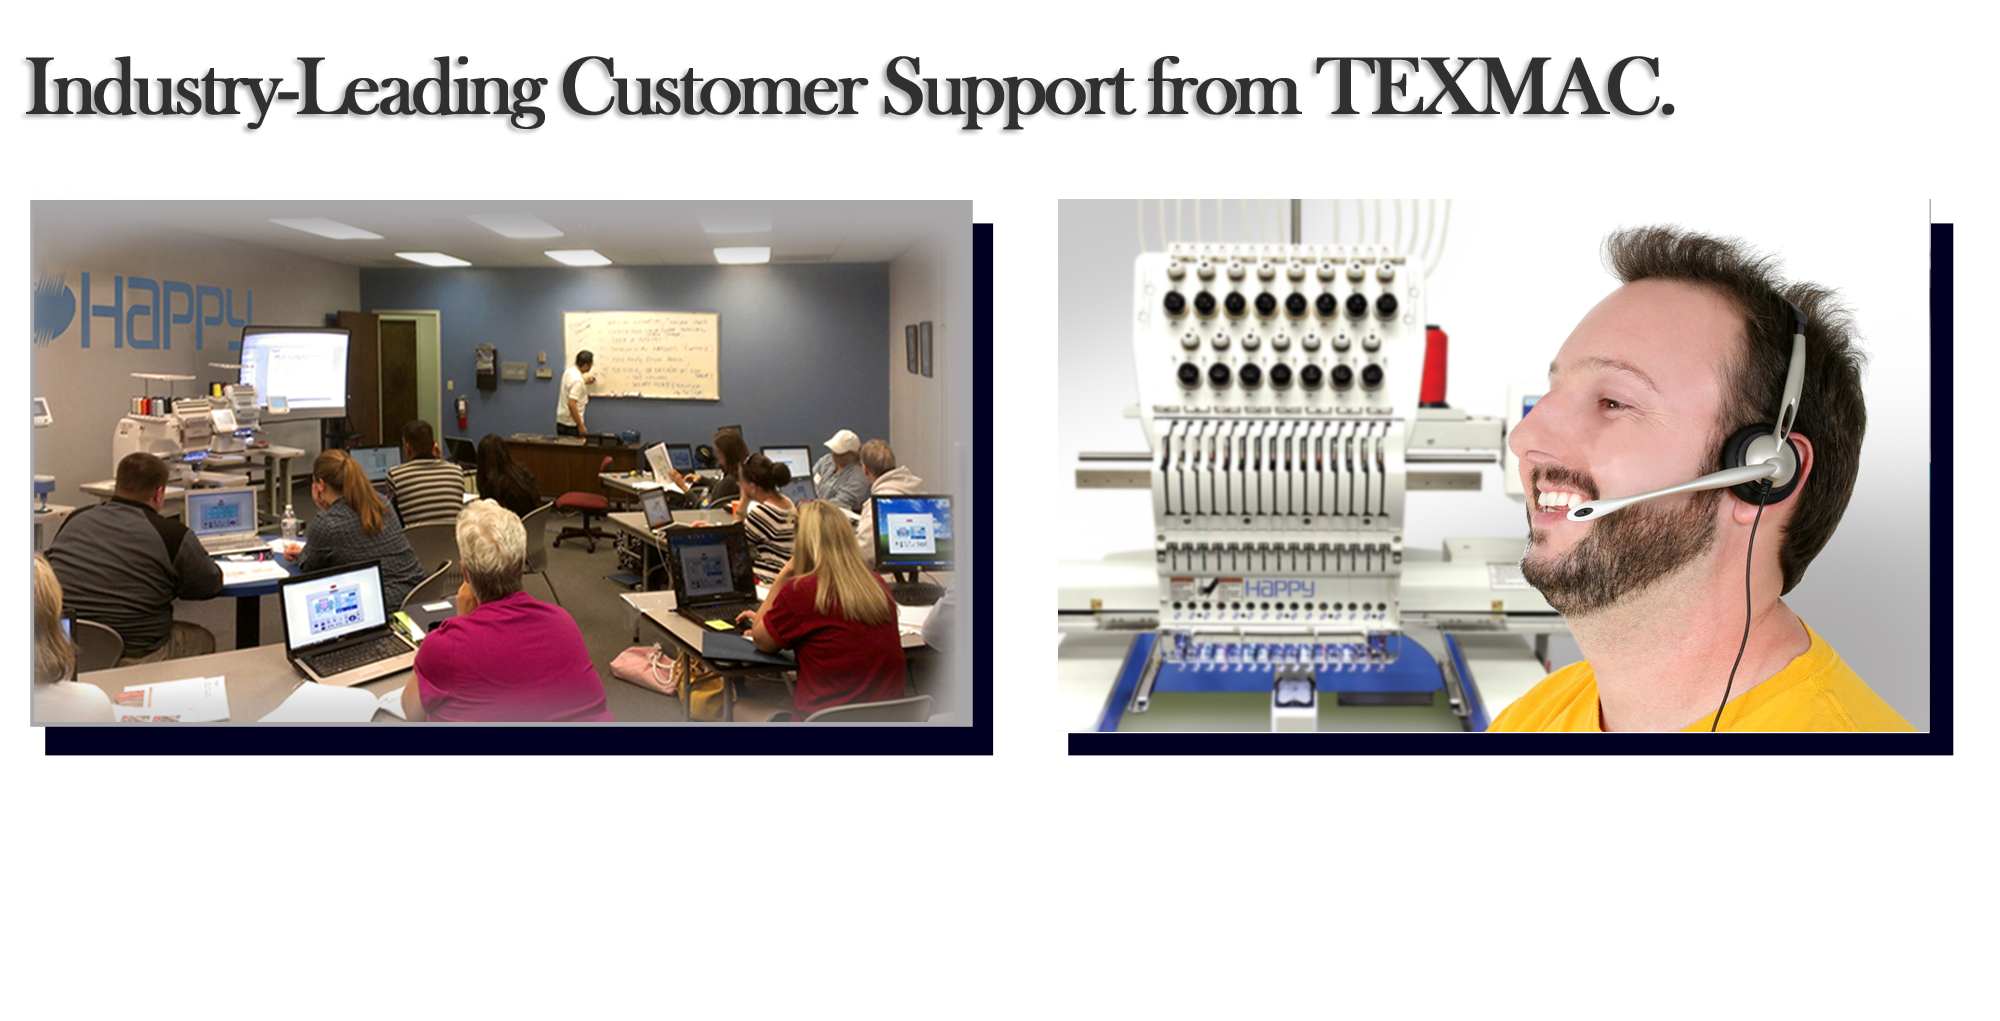 Happy embroidery machine customer support